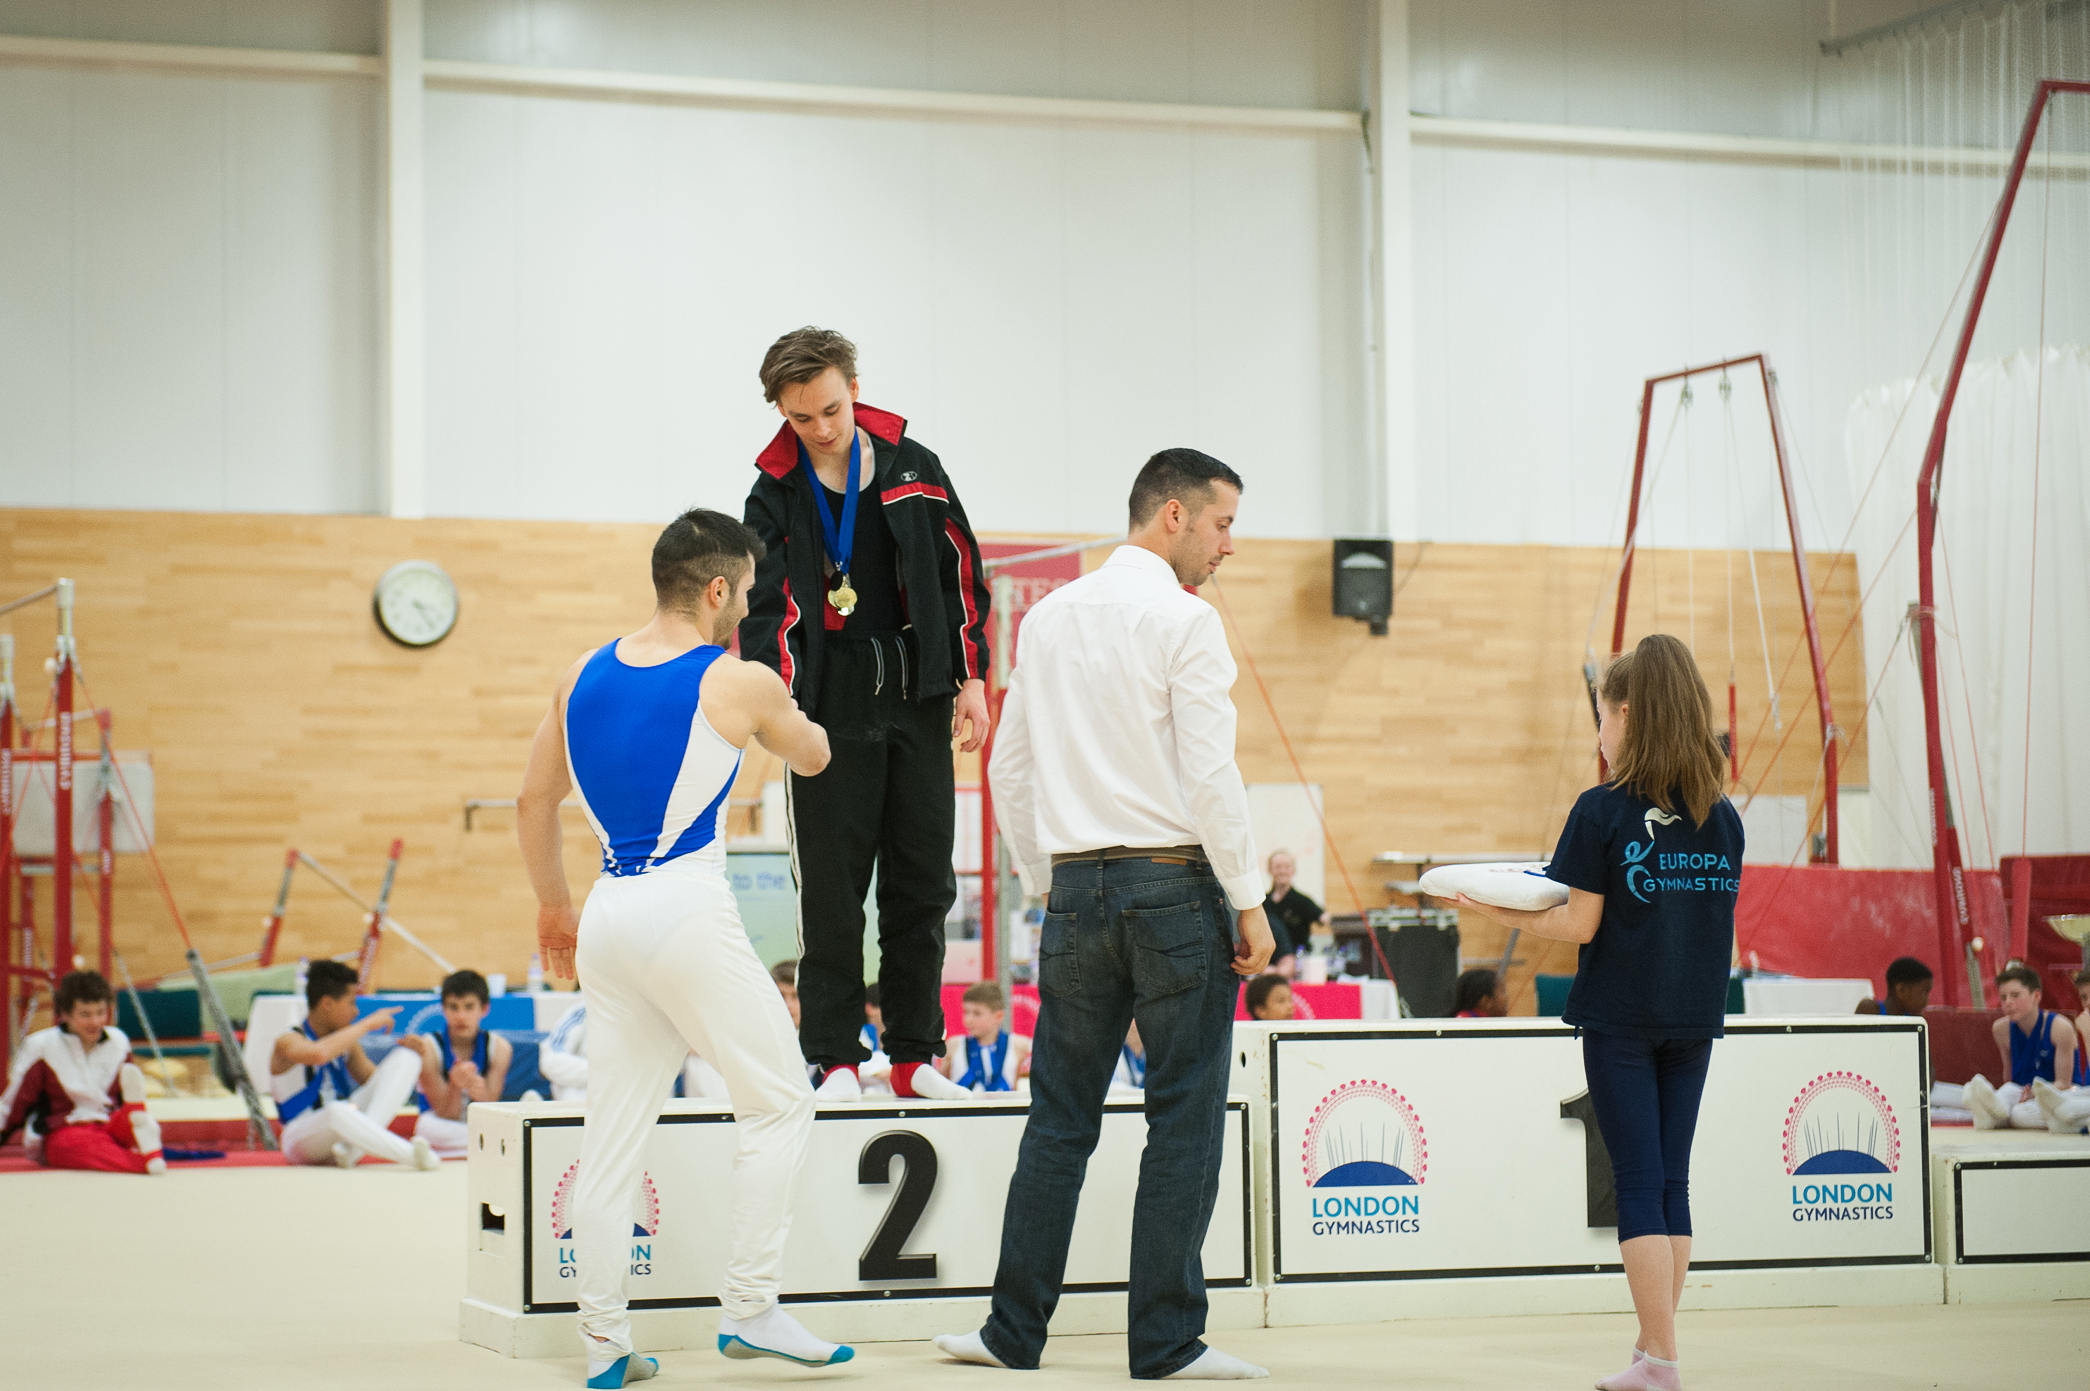 Presentation Ceremony - London Gymnastics